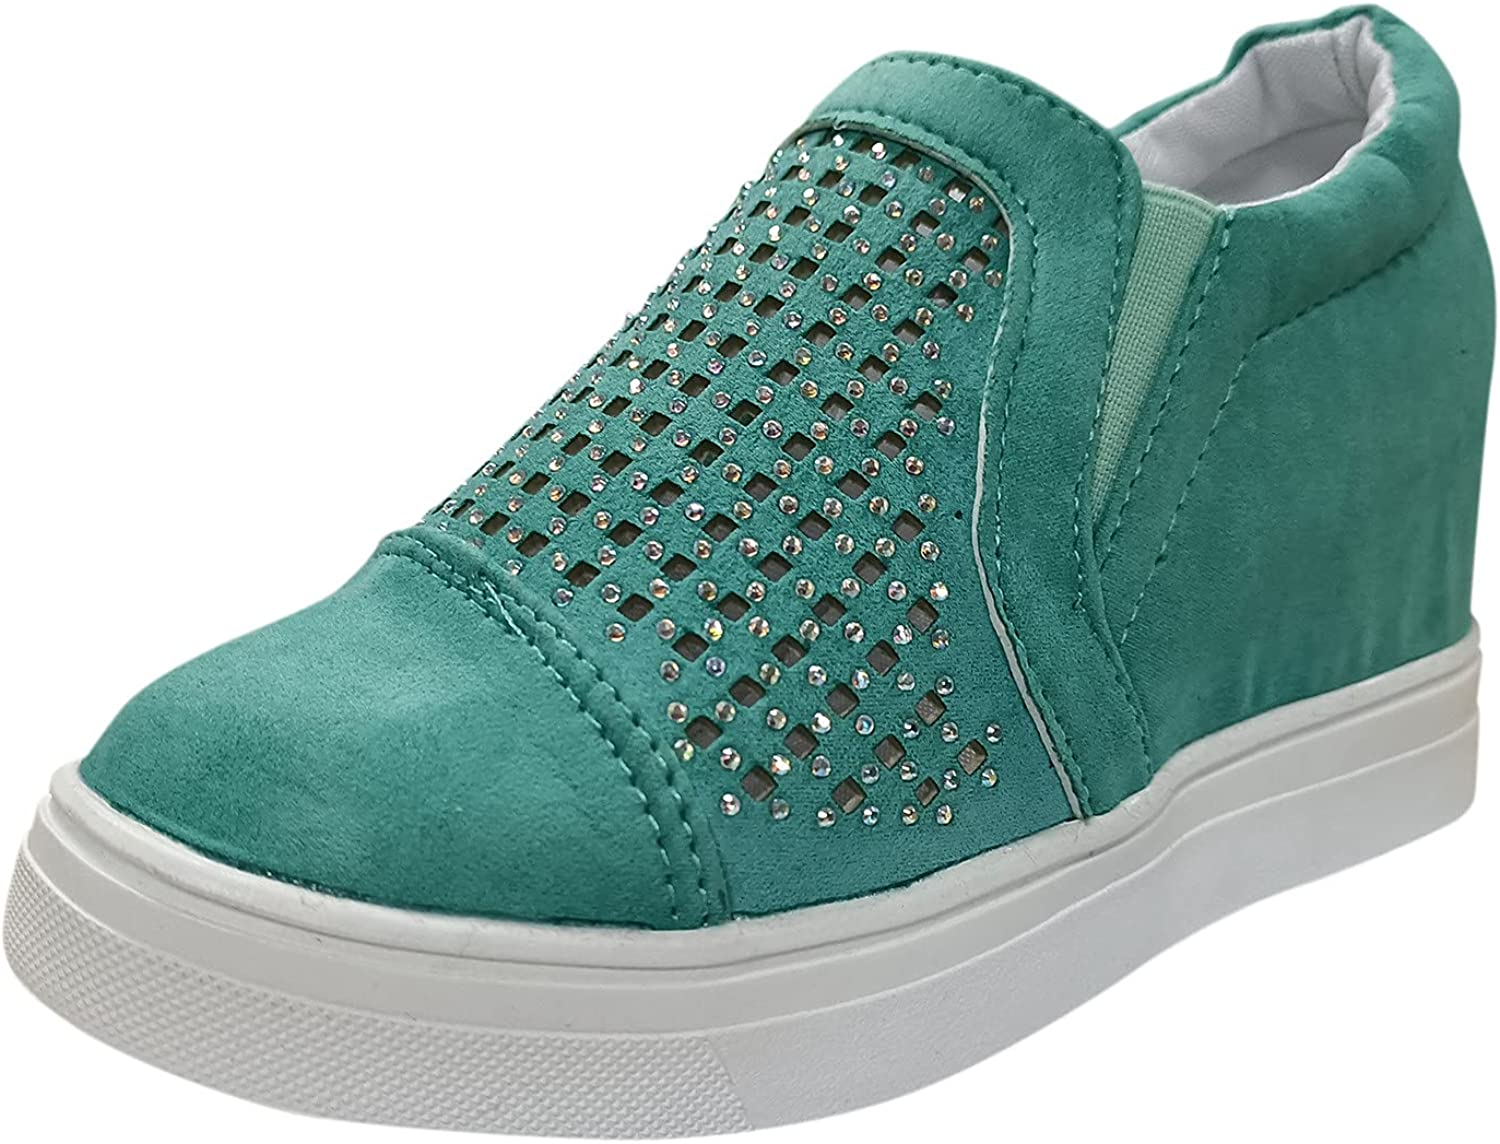 Women's Comfort Fashion Sneakers Ladies Canvas Sneakers Flat Shoes for Women Casual Comfort Fashion ker Slip Ons Loafer Slip on Shoes White Slip on Shoes Slip on Shoes for Women(Green, 9)